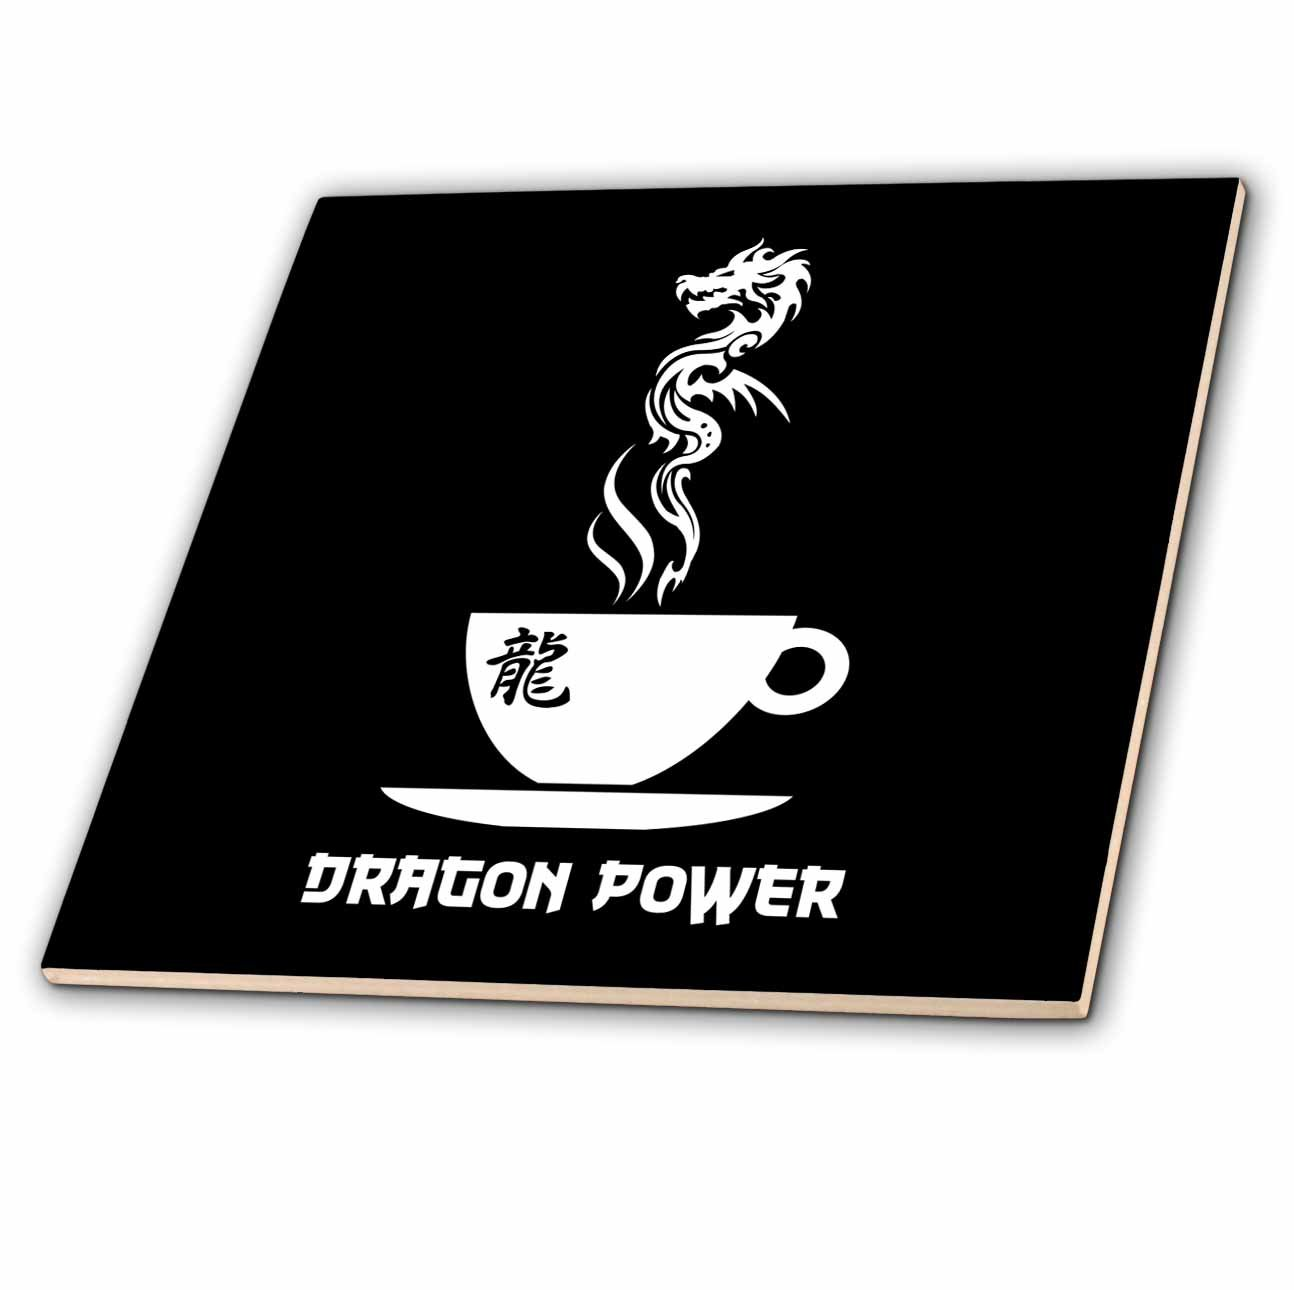 3dRose Alexis Design - Coffee - Dragon power cup of coffee on black background - 6 Inch Ceramic Tile (ct_272412_2)